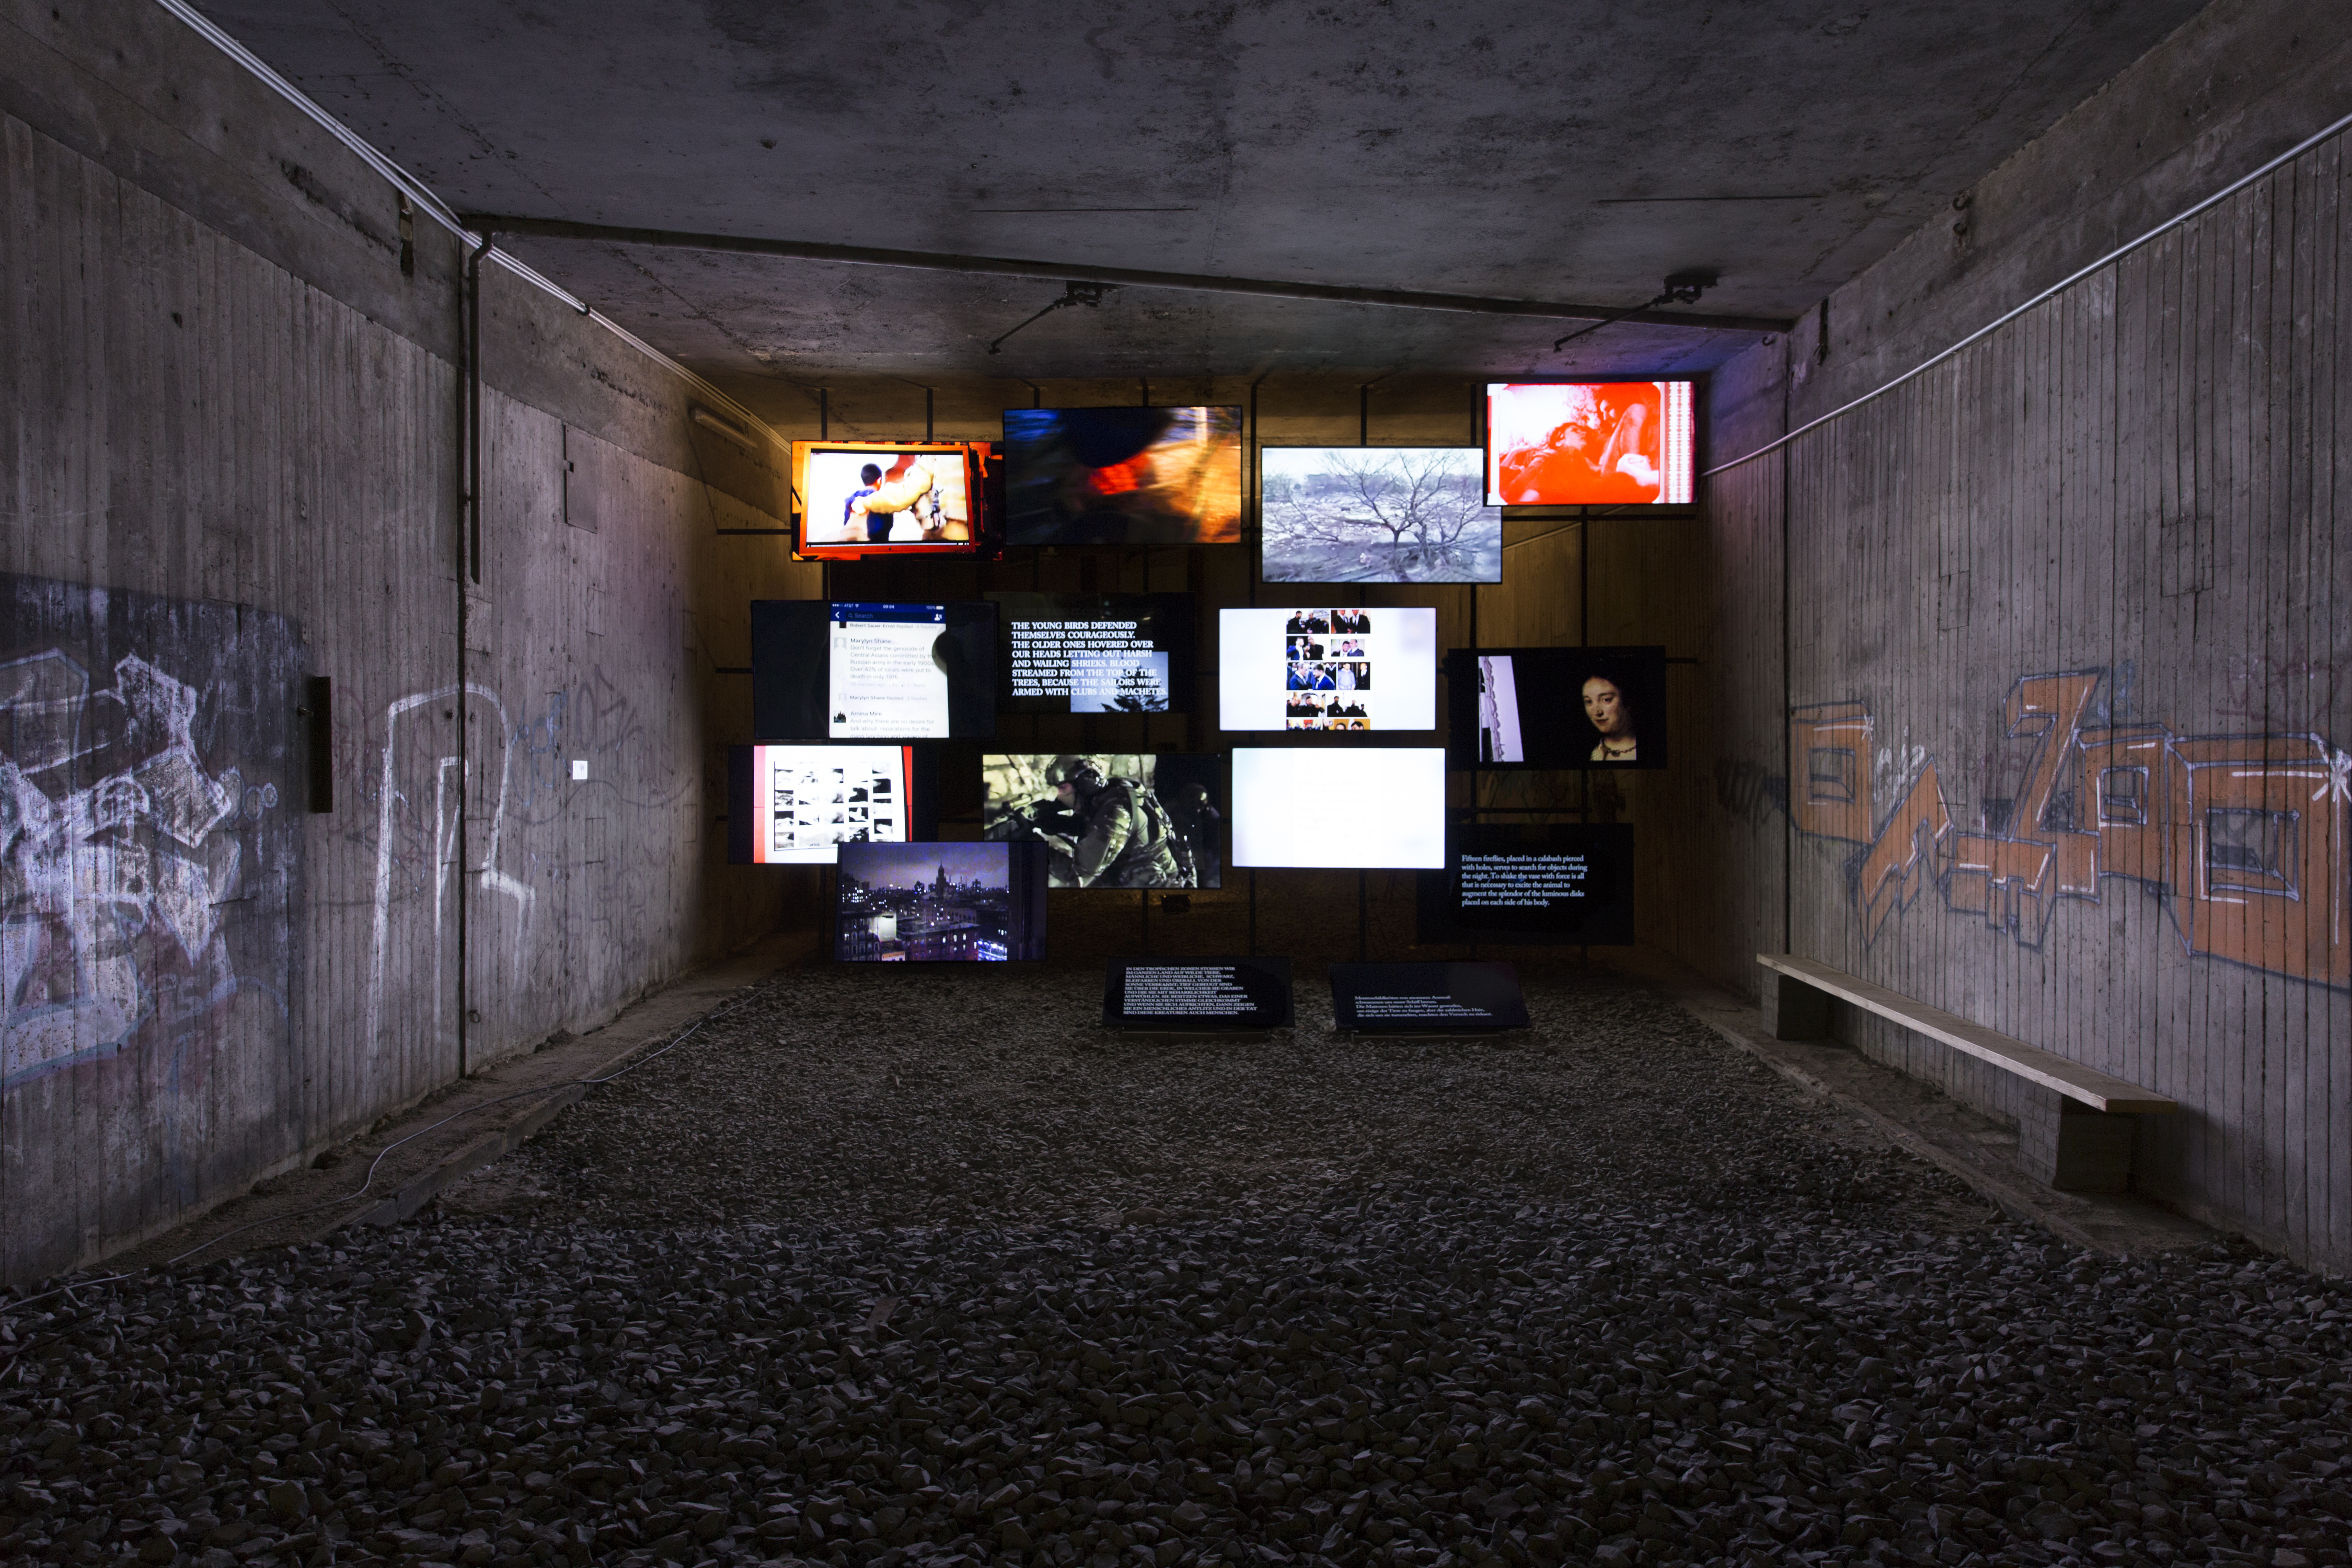 Michel Auder, <em>The Course of Empire</em>, 2017. Fourteen-channel digital video installation, Former Underground Train Station (KulturBahnhof), Kassel. Photo: Jasper Kettner